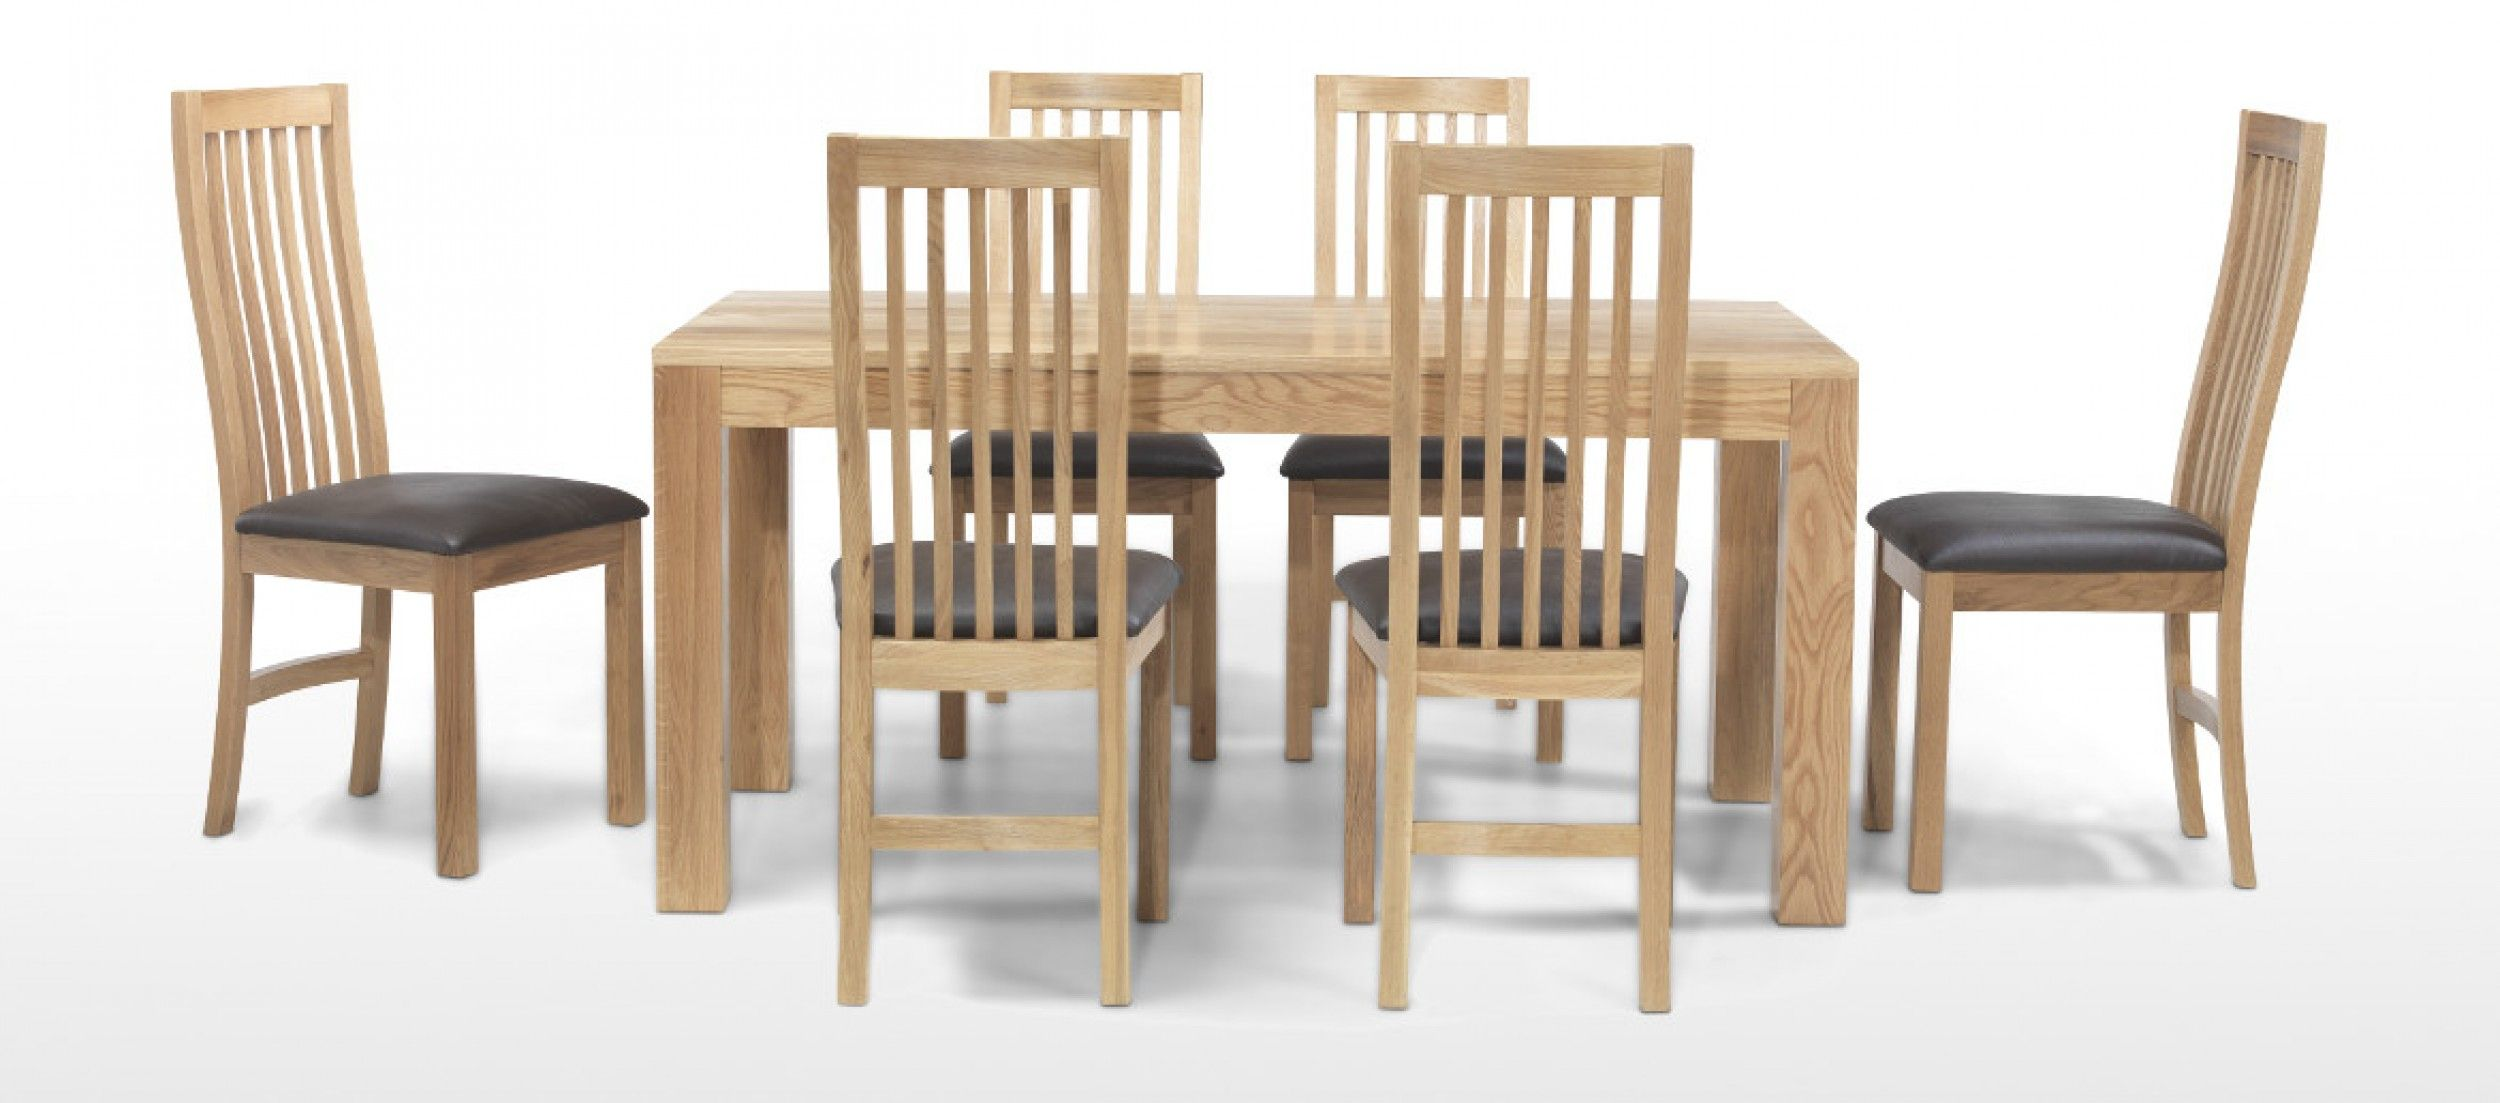 Solid Oak Dining Set 6 Chairs  Go To Chinesefurnitureshop For Mesmerizing Cheap Dining Room Chairs Set Of 6 Design Ideas